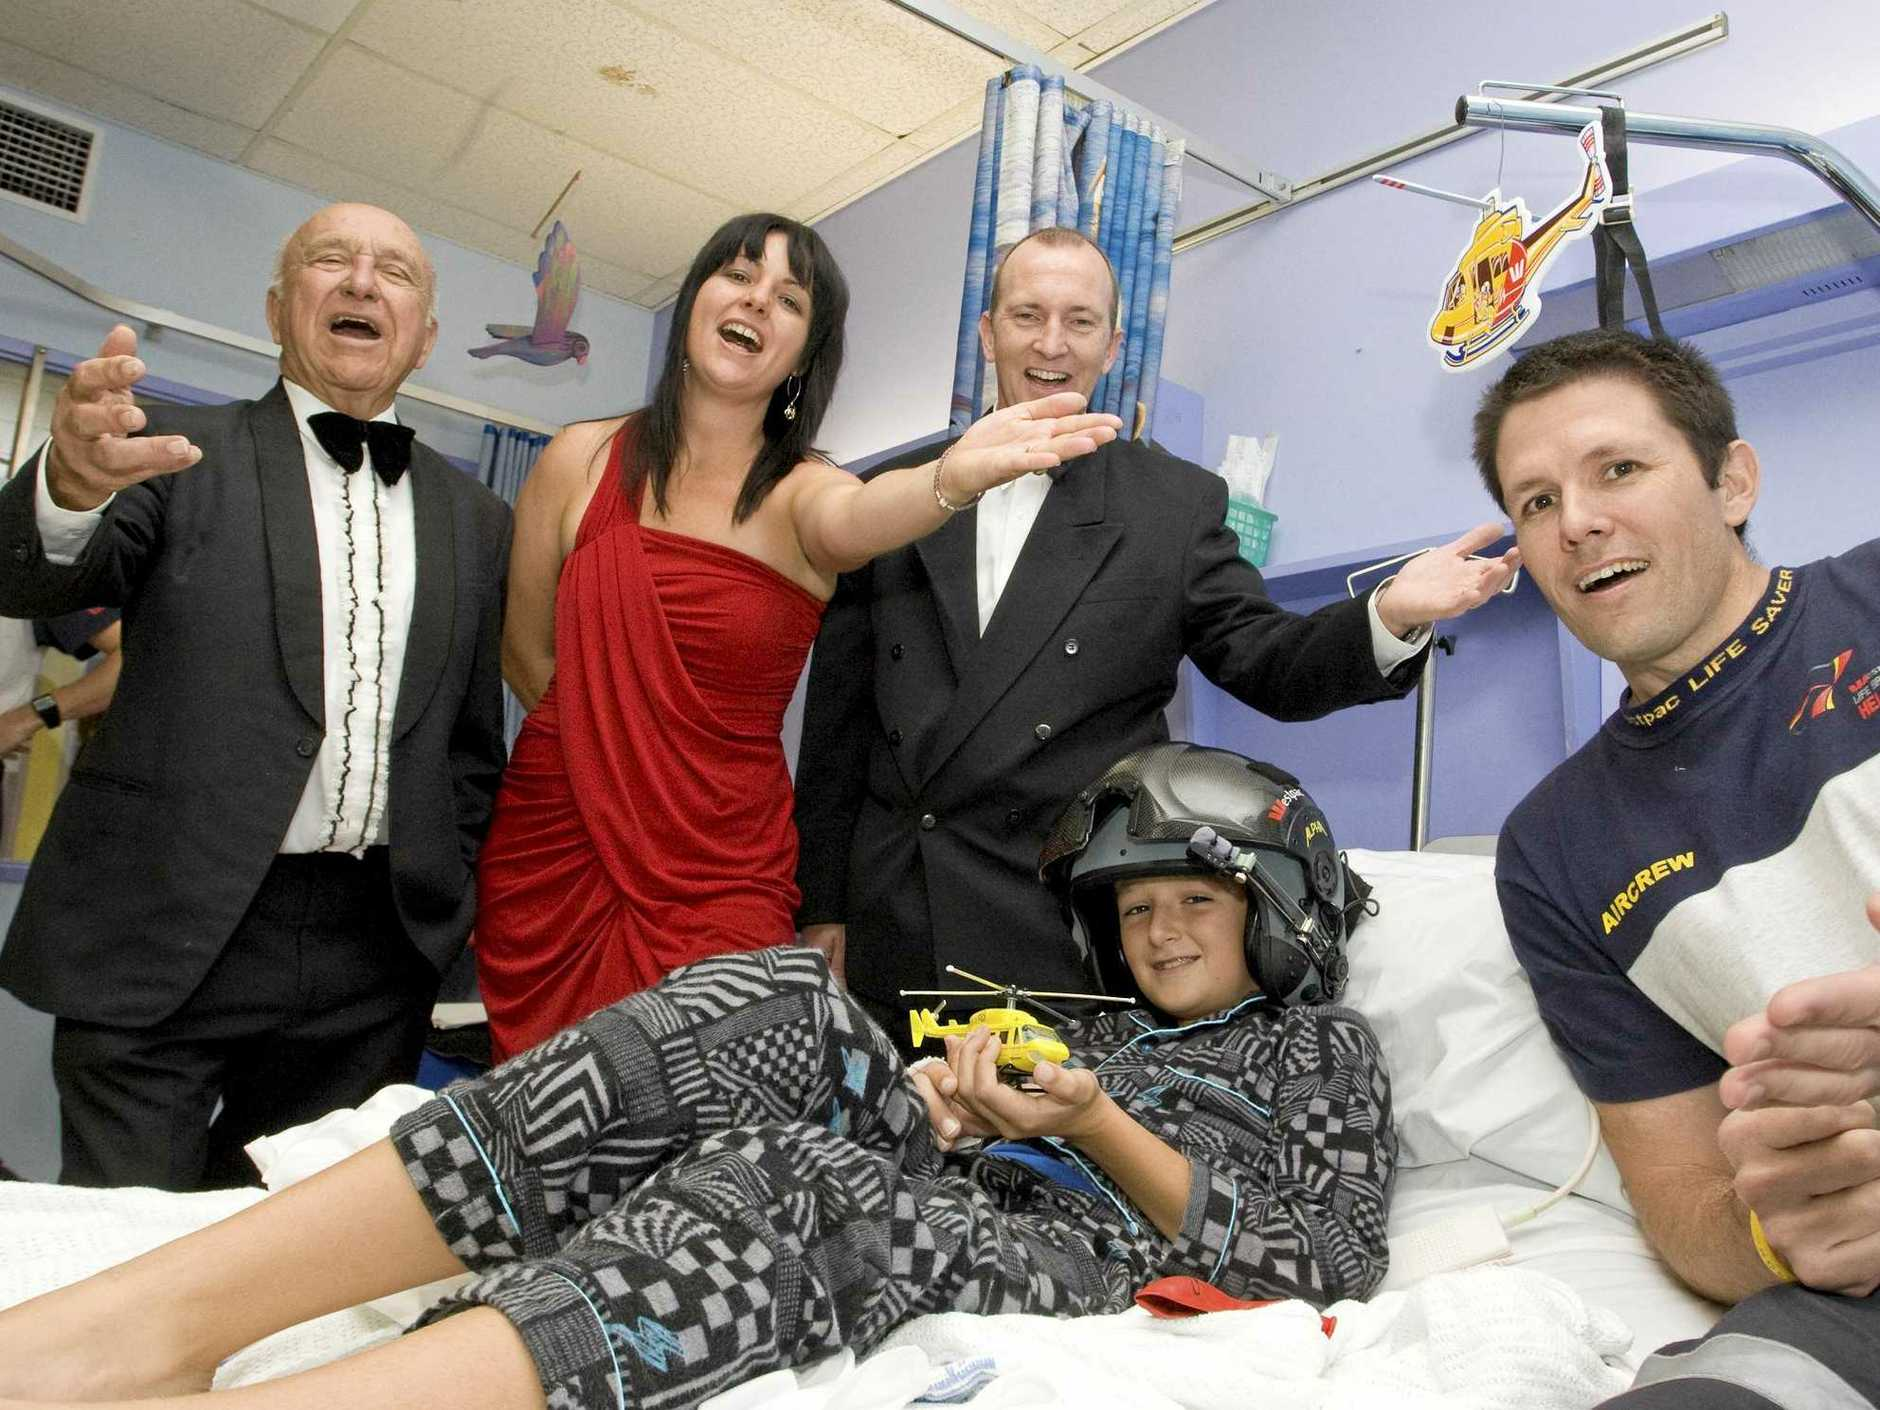 (l-r) Geoff Cawley , Rebekka Battista, from Our Kids, Kevin Poole, from the Opera at The Channon and  Westpac Life Saver Rescue Helicopter crewmen, Patrick Wallbridge,  pose for a portrait with Dylan Parks, 10 from Clunes, at the childrens ward at the Lismore Base Hospital, ahead of the Opera at The Channon in July. Photo Jerad Williams / The Northern Star